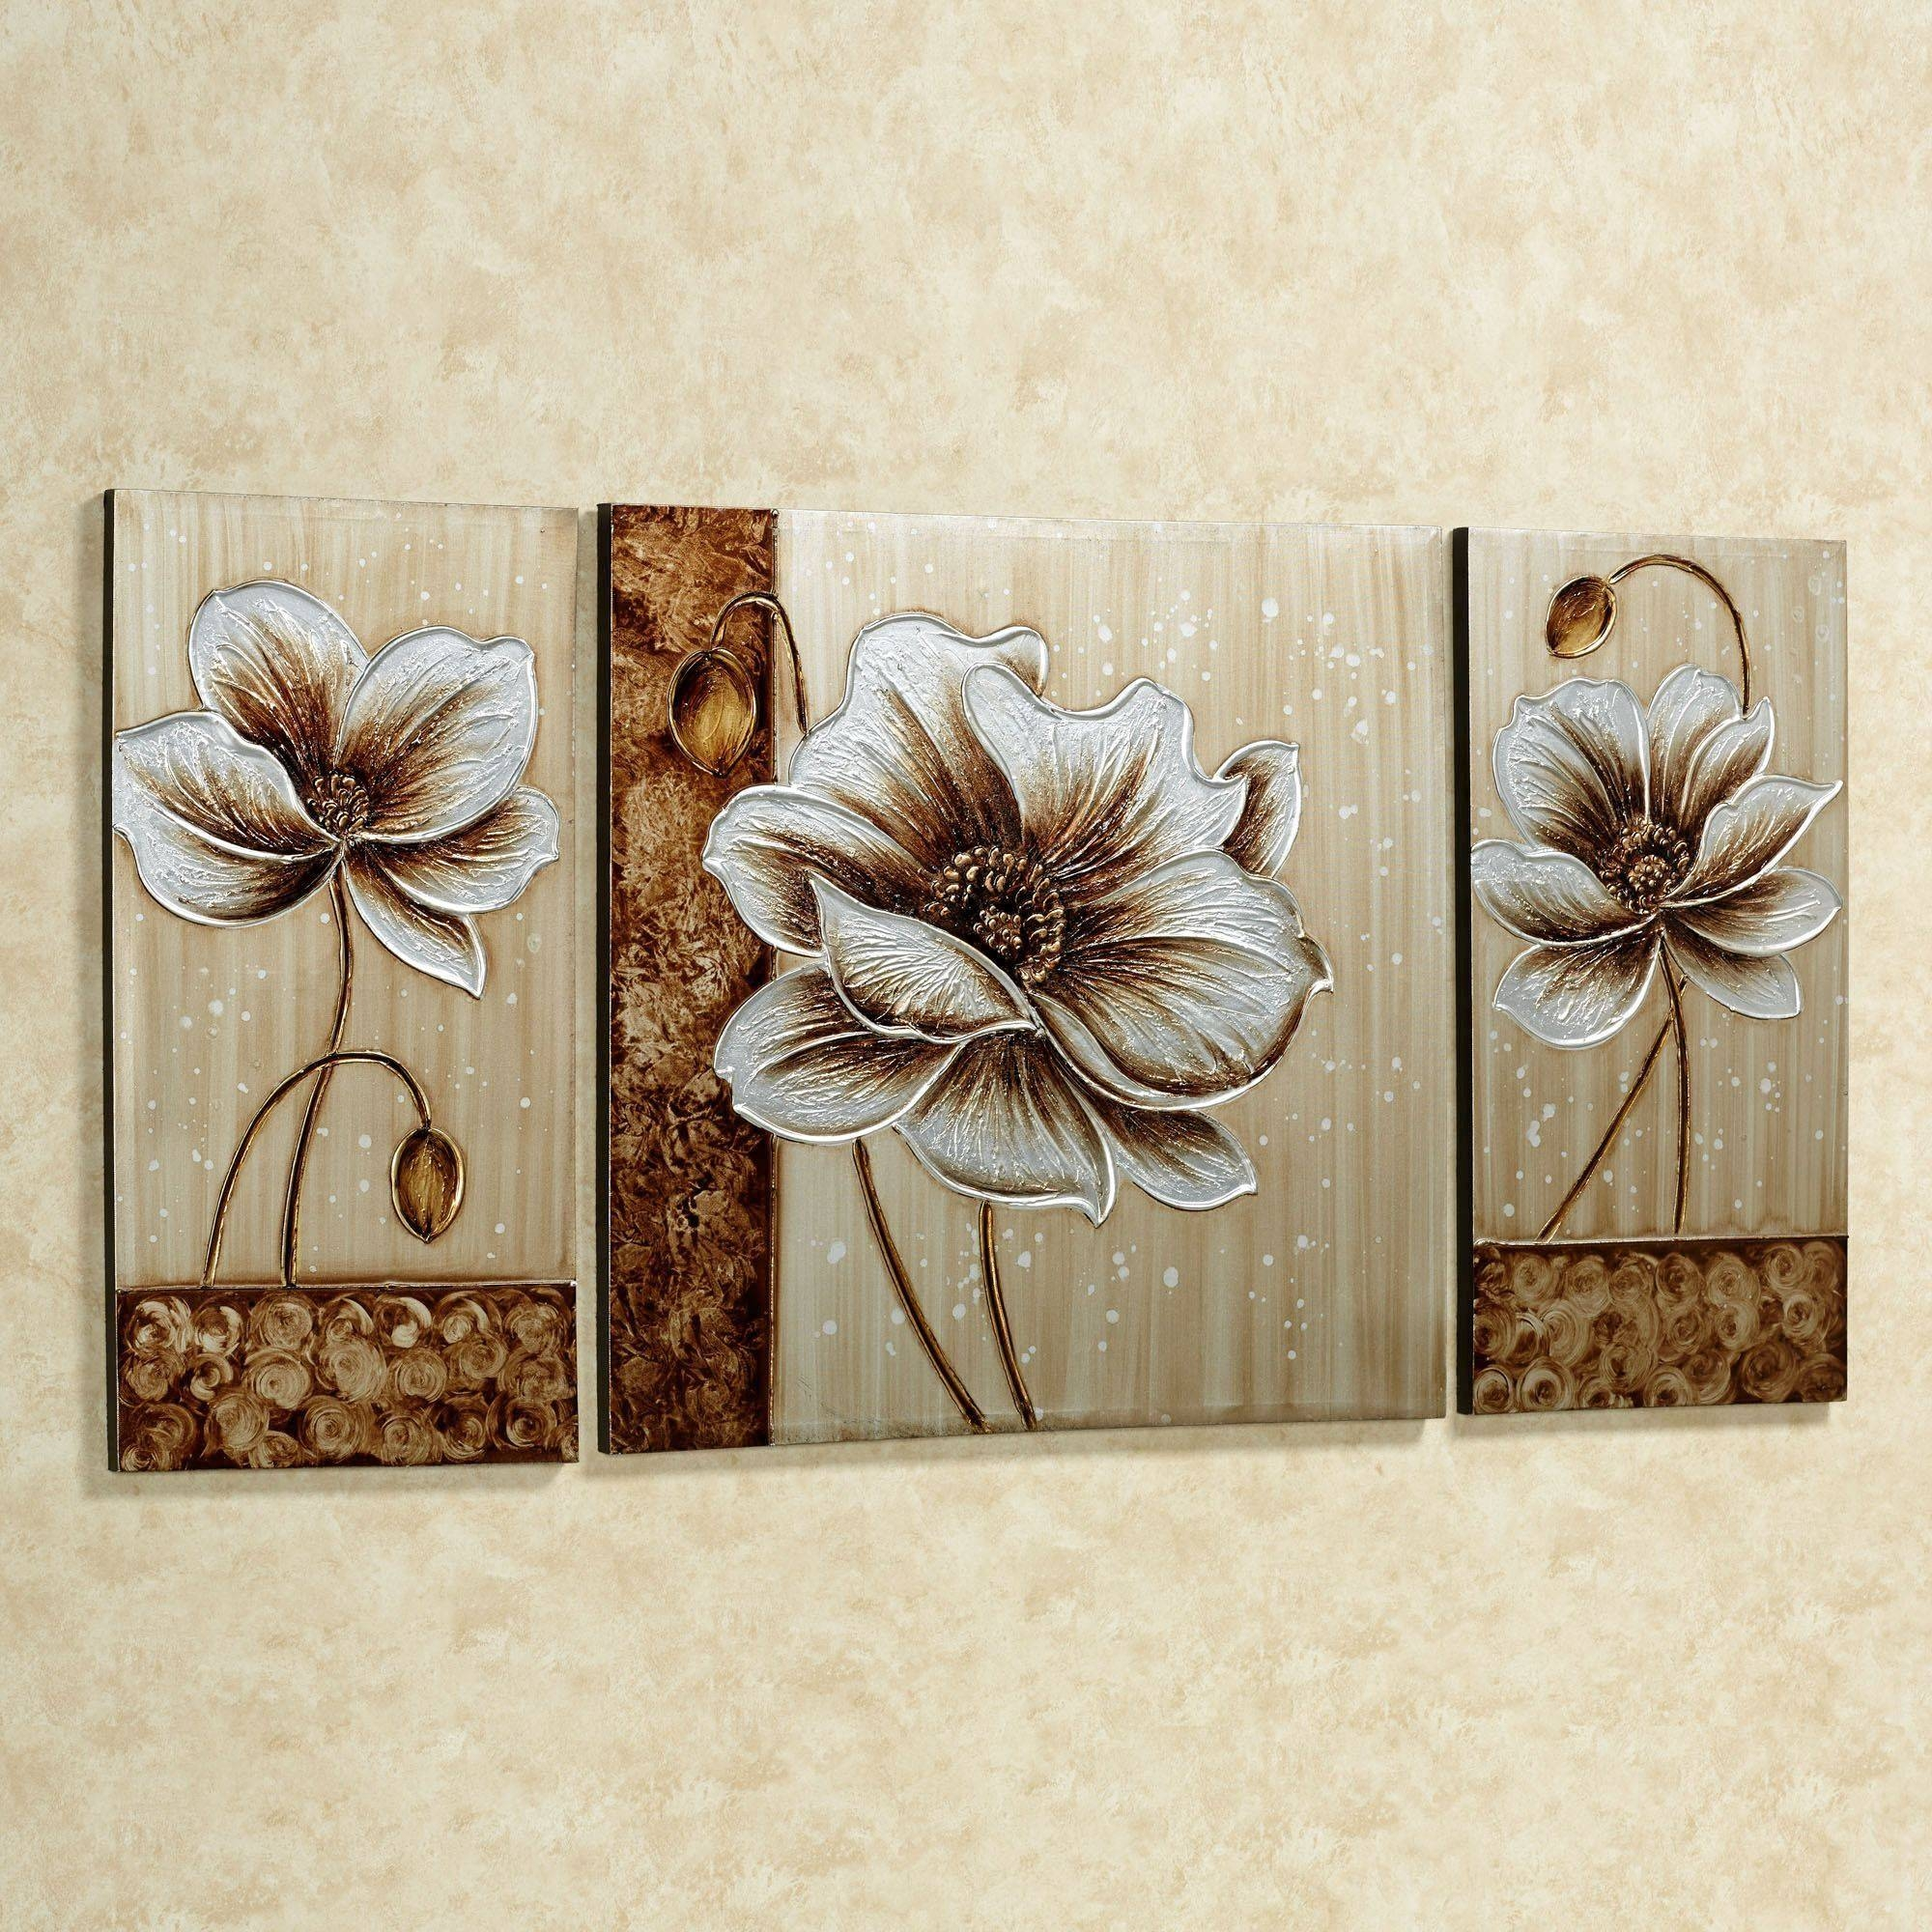 Wall Art Design: Three Canvas Wall Art Rectangle Square Cream For Current Canvas Wall Art 3 Piece Sets (View 9 of 20)